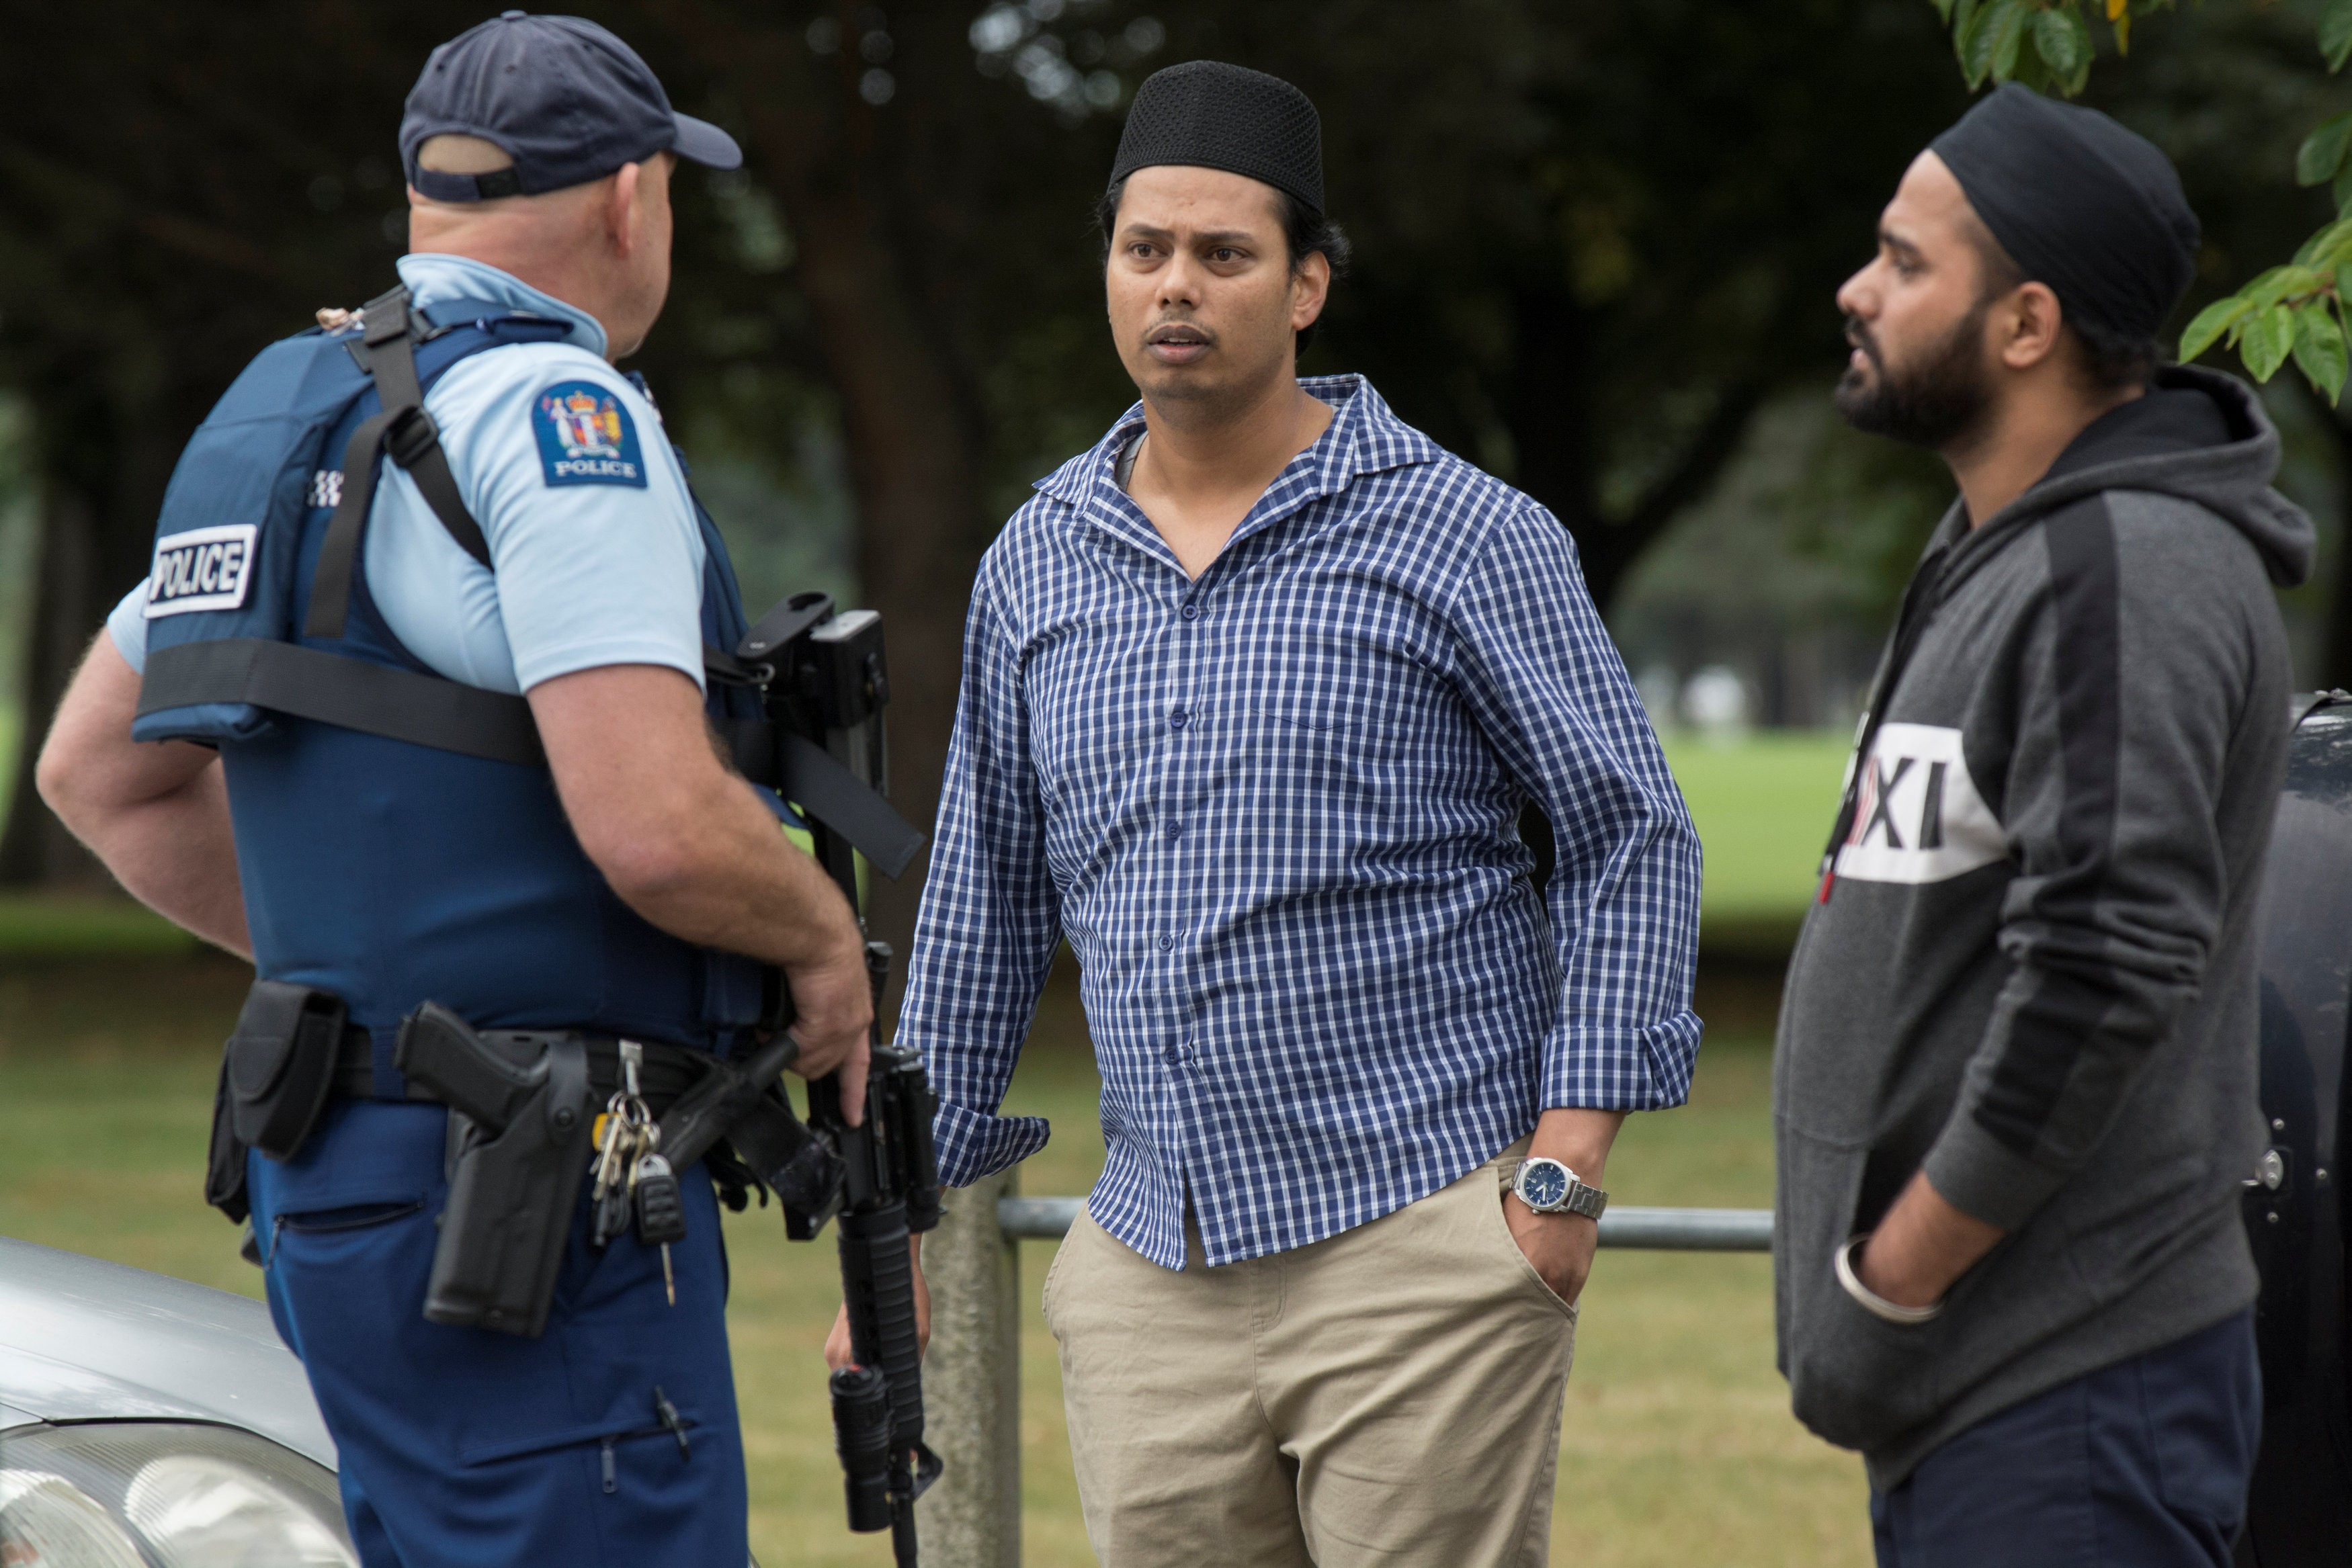 Witnesses and police at the south end of Deans Avenue after a shooting incident at the Al Noor mosque in Christchurch, New Zealand, on March 15